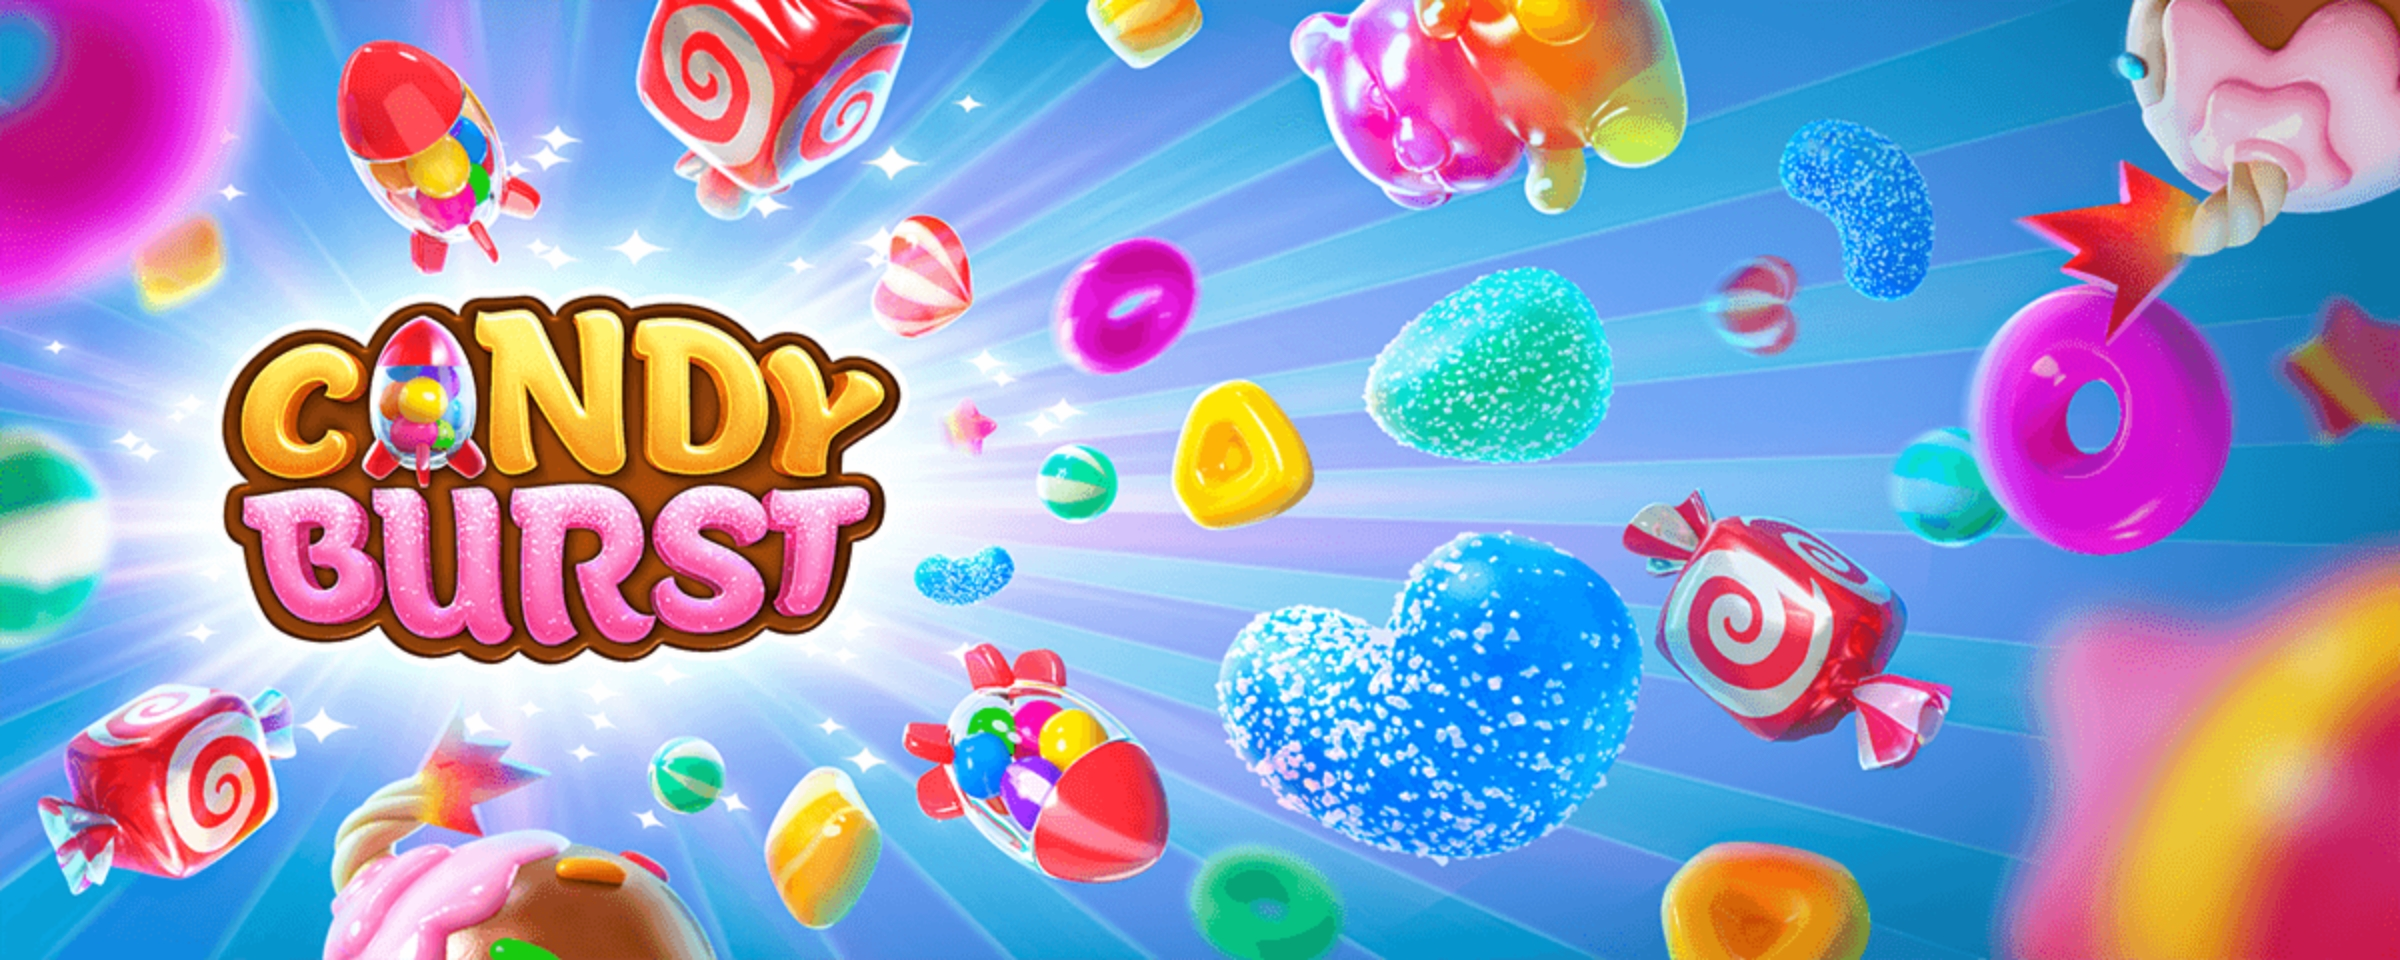 Se Candy Burst (PG Soft) Online Slot Demo Game, PG Soft